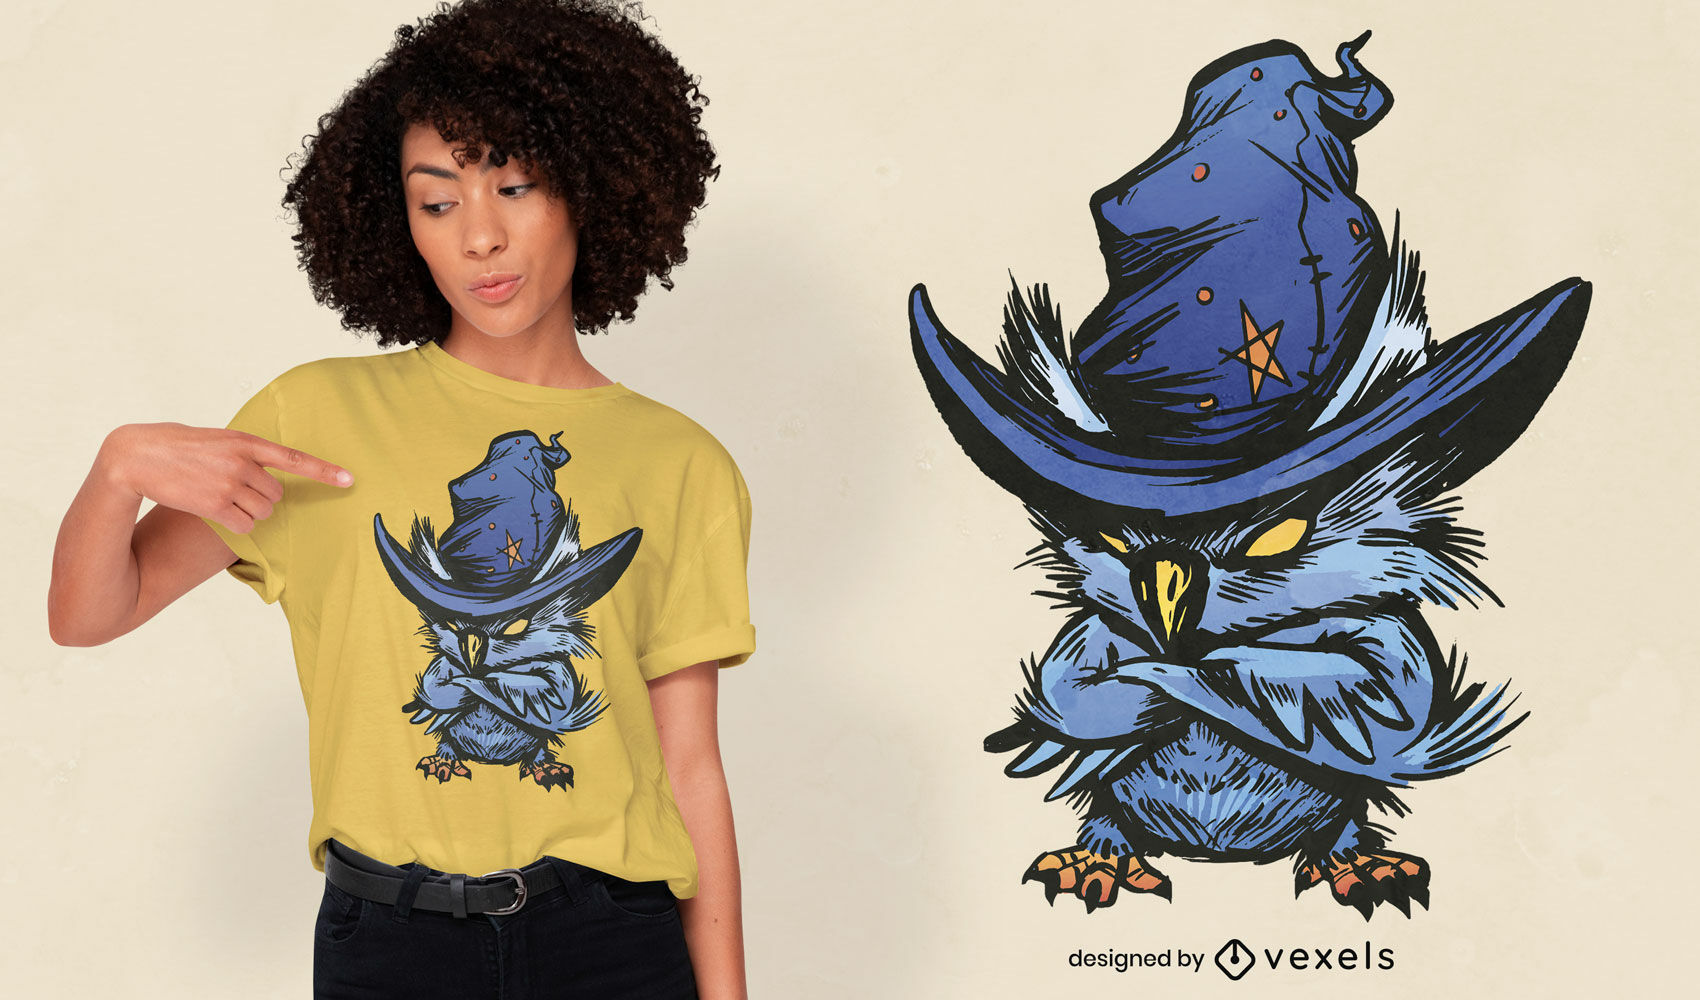 Angry owl with witch hat t-shirt design